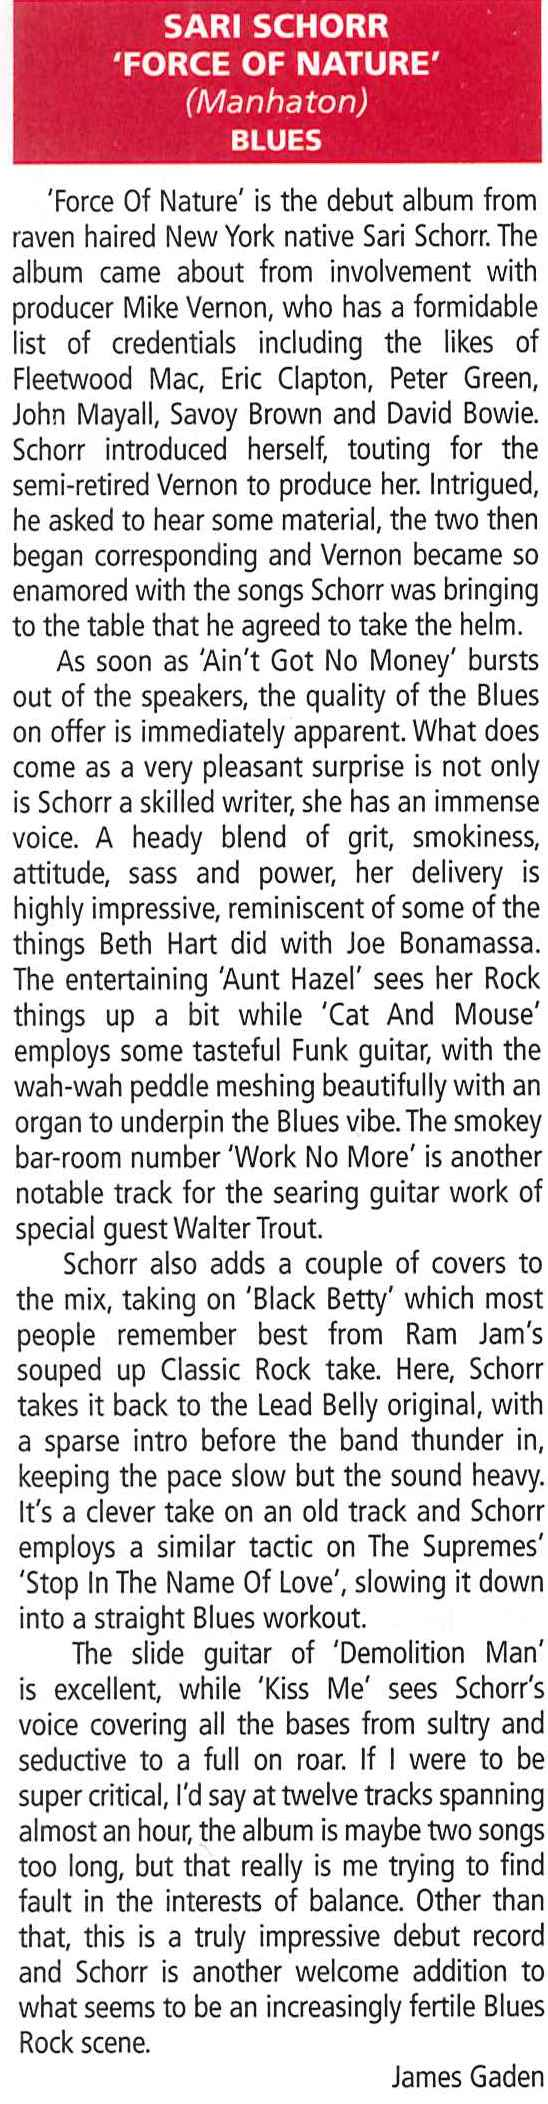 Fireworks Magazine_Oct Dec 2016_Sari Schorr_Album Review_2.jpg